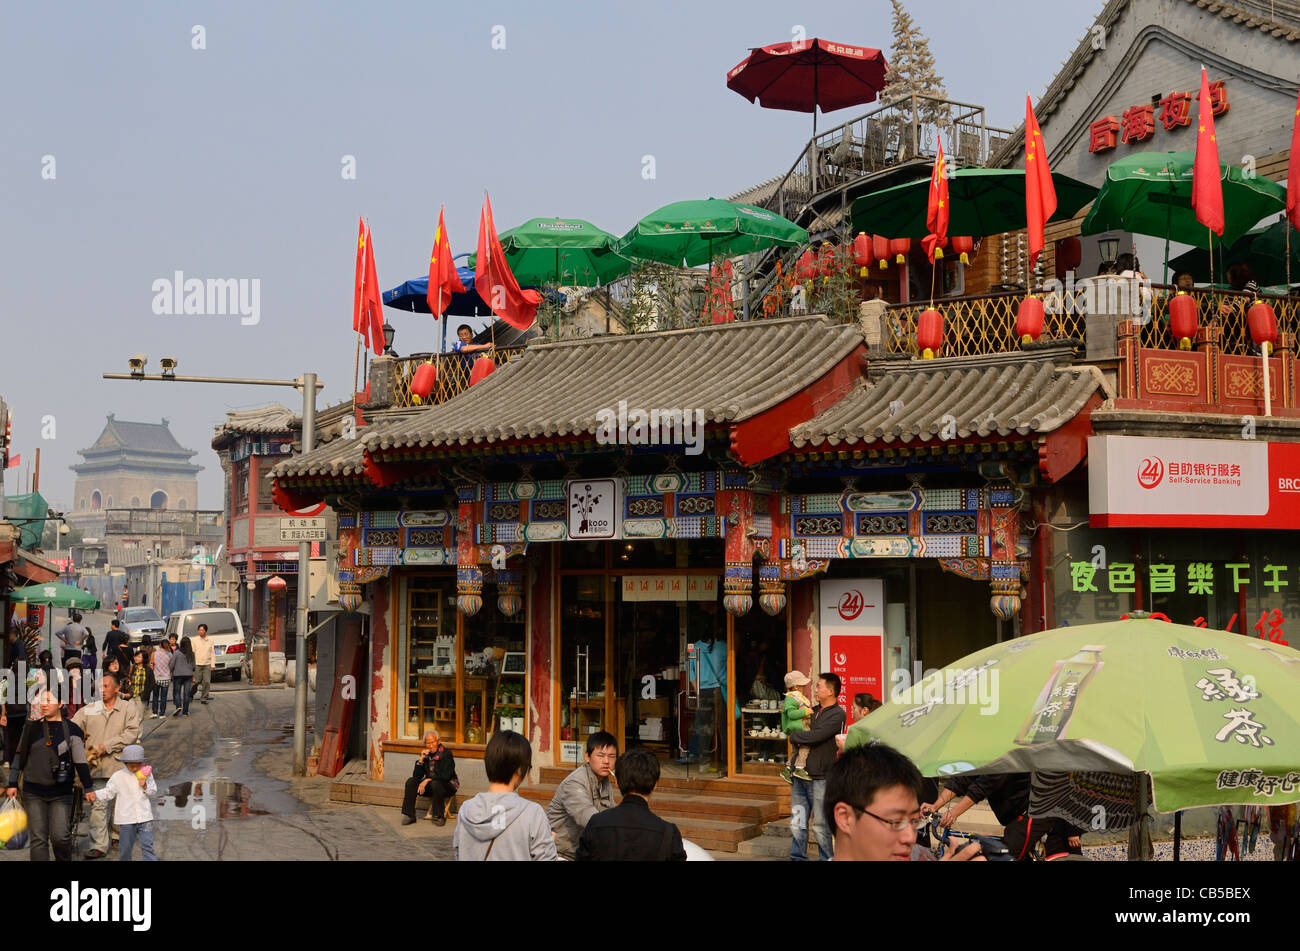 View of Hutong intersection and Bell Tower from Yinding bridge between Houhai and Qianhai lakes Beijing Peoples - Stock Image